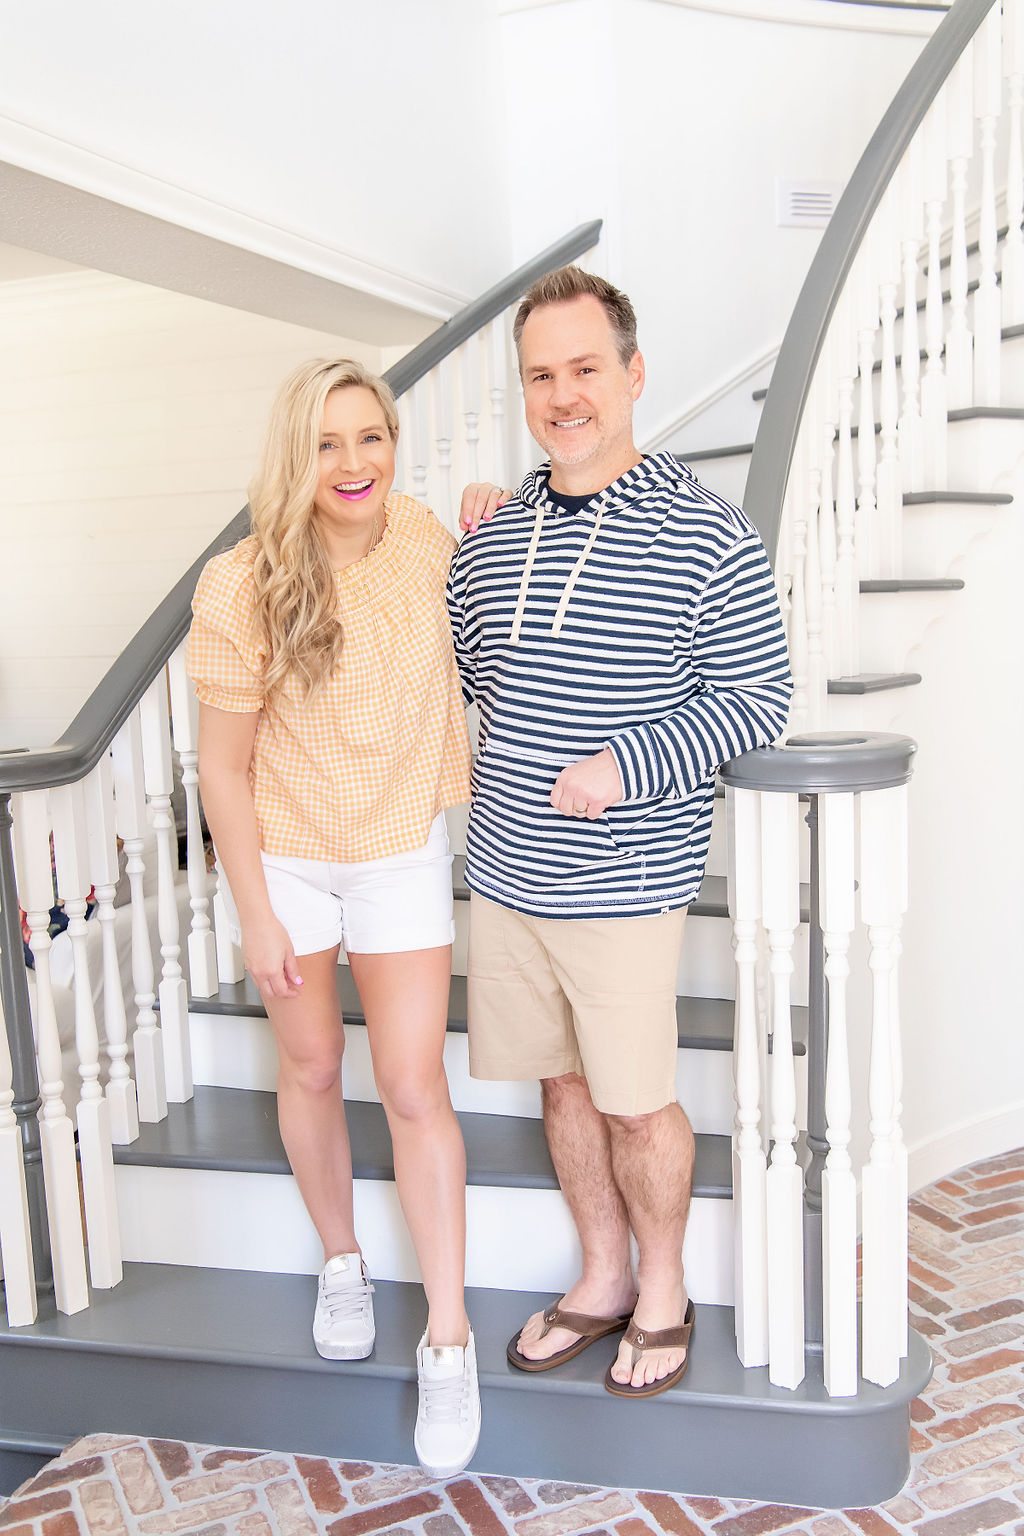 Little Black Dresses by popular Houston fashion blog, The House of Fancy: image of a man and woman standing together and wearing a blue and white stripe hoodie, tan shorts, brown sandals, orange gingham top, white shorts, and white sneakers.